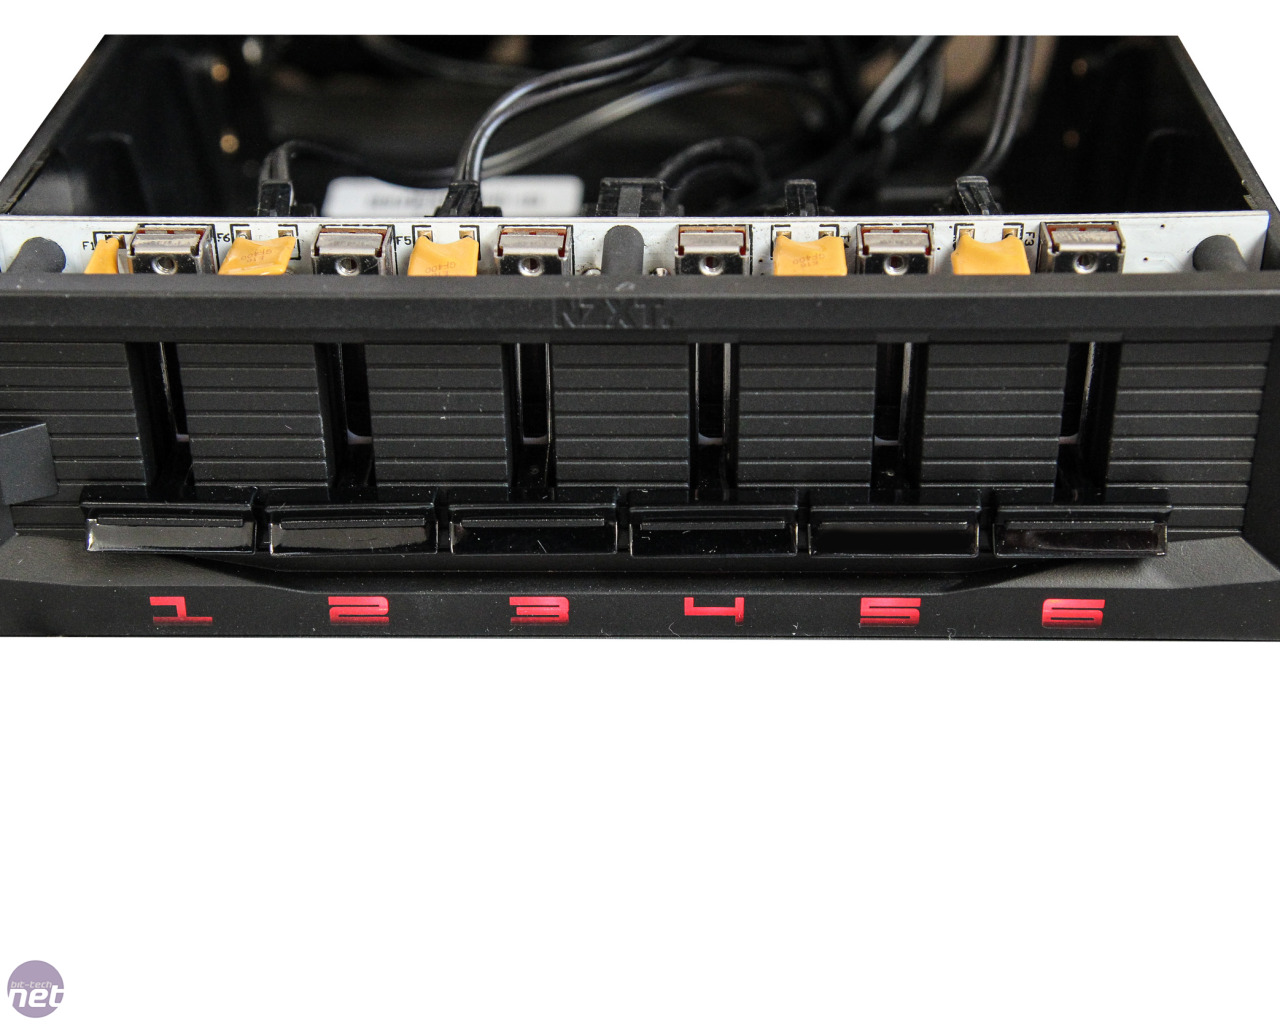 Nzxt Sentry Mix 2 Fan Controller Review Do Not Need Want The Kill Switch To Be Illuminated When